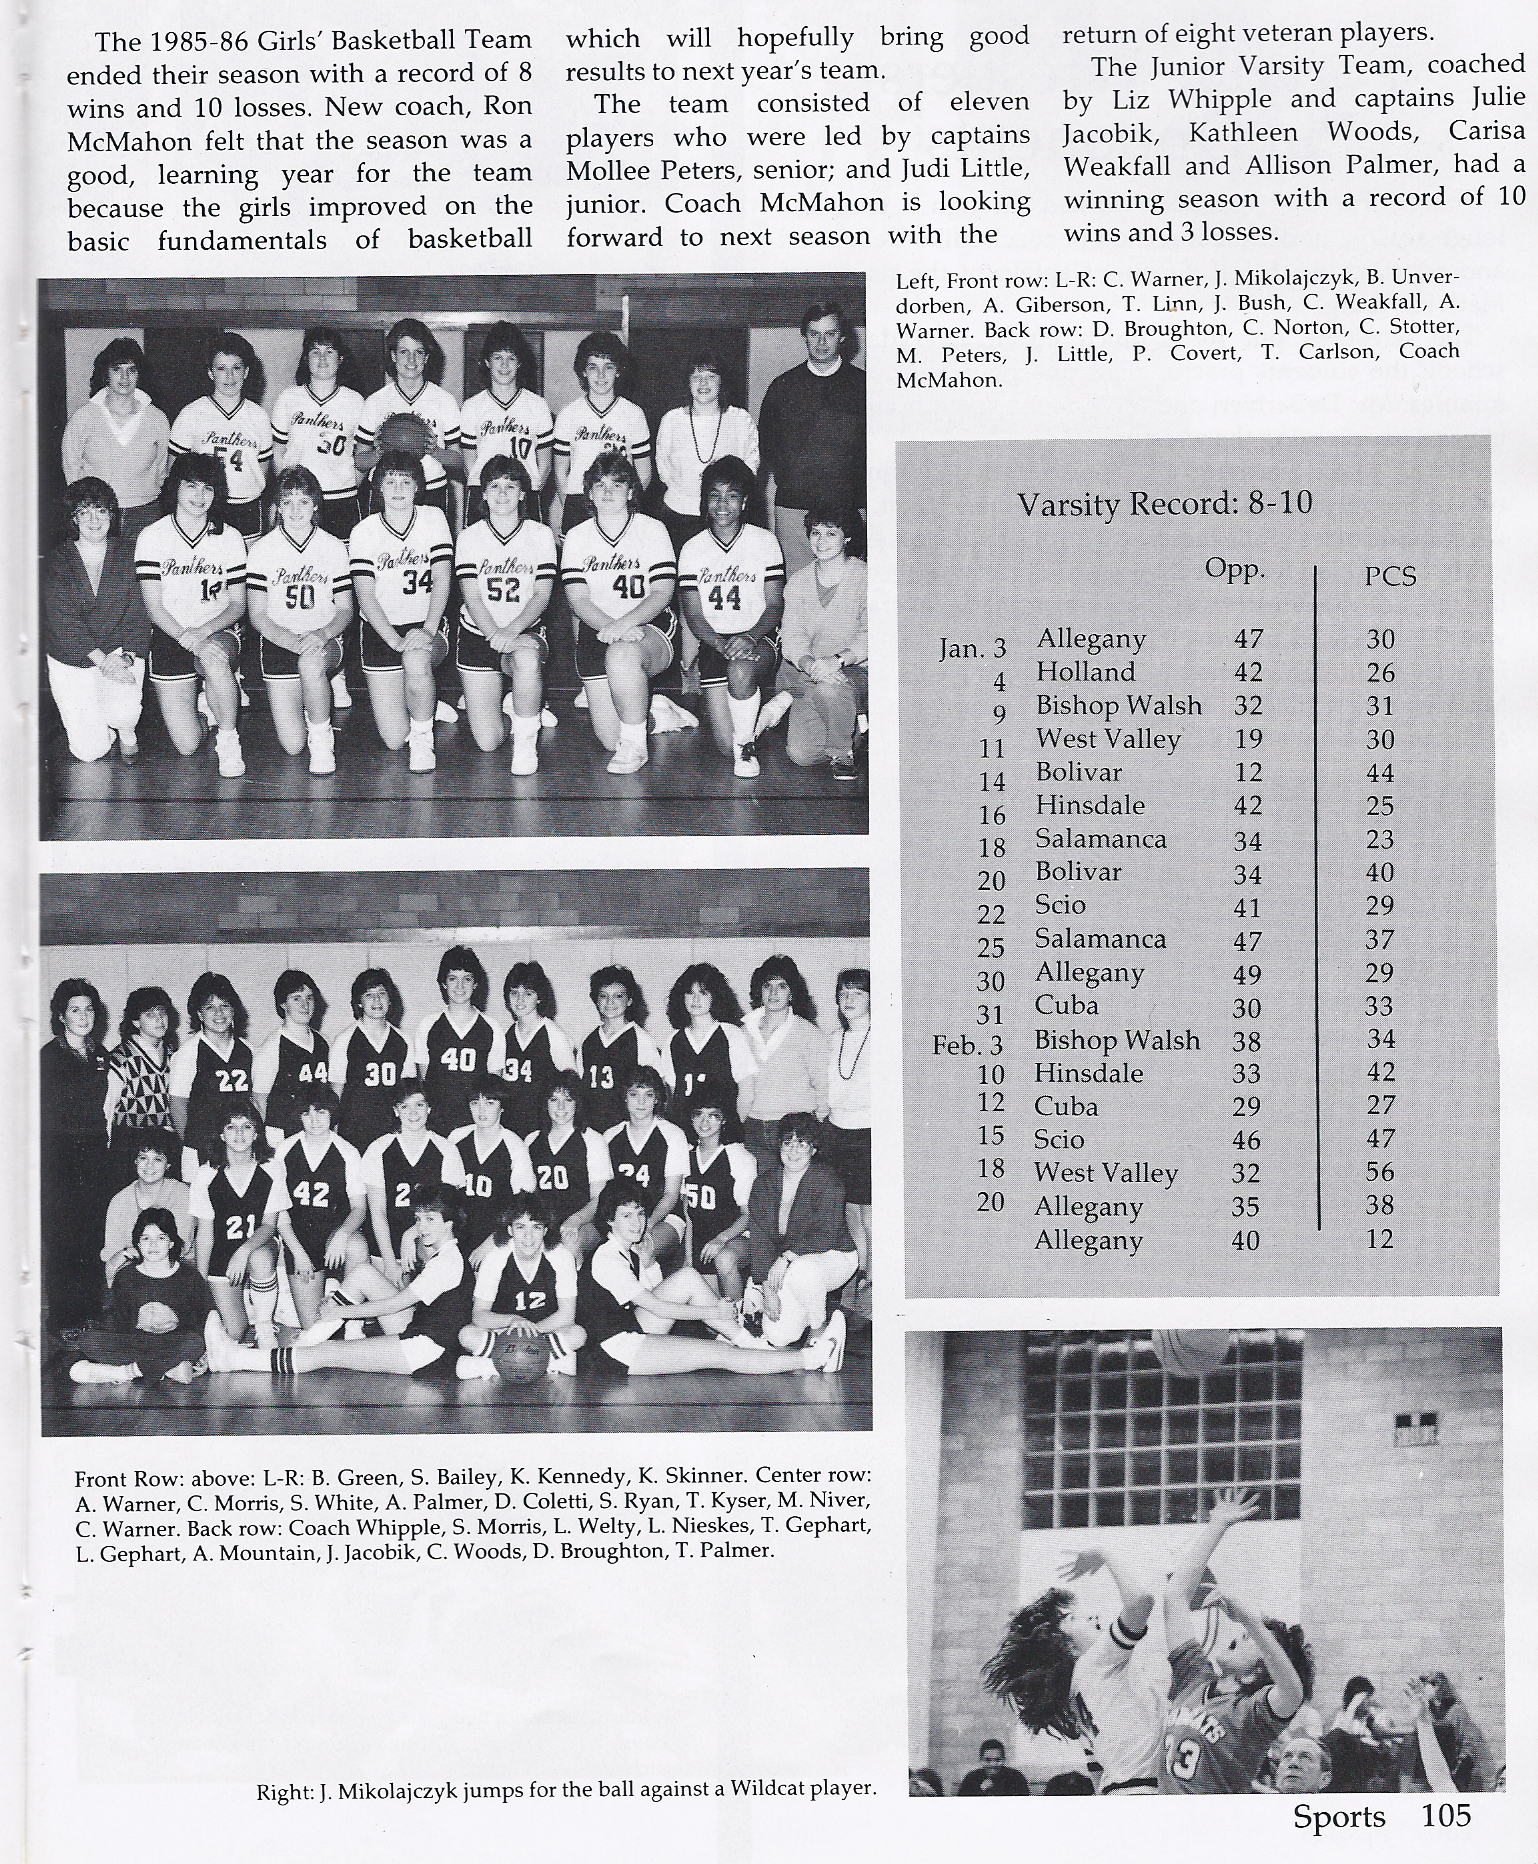 GirlsHoops/1986girls.jpg